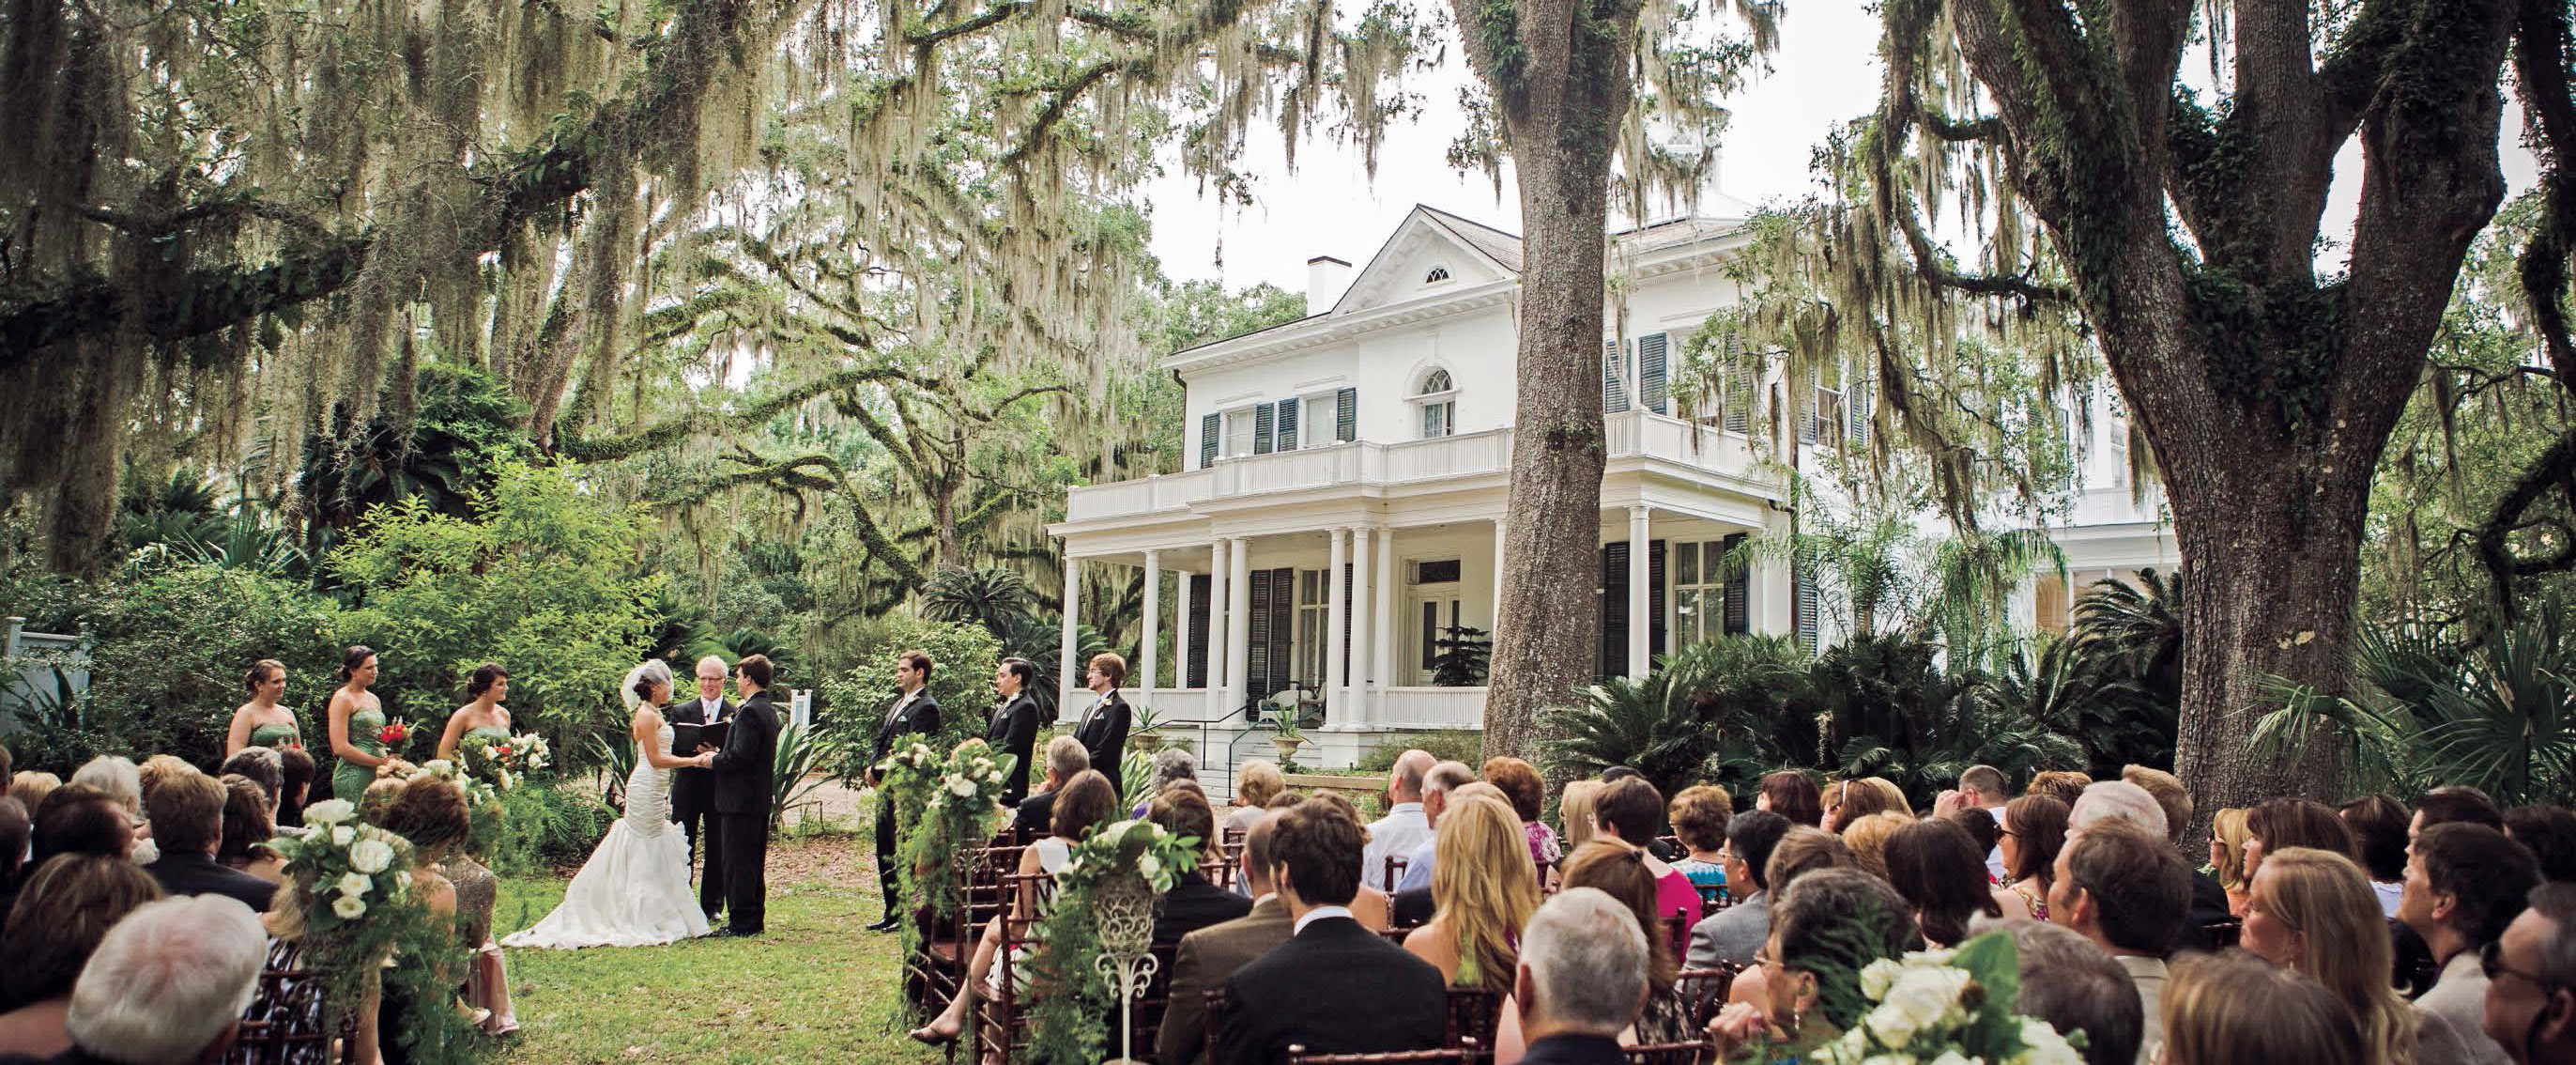 goodwood museum gardens weddings and events tallahassee fl